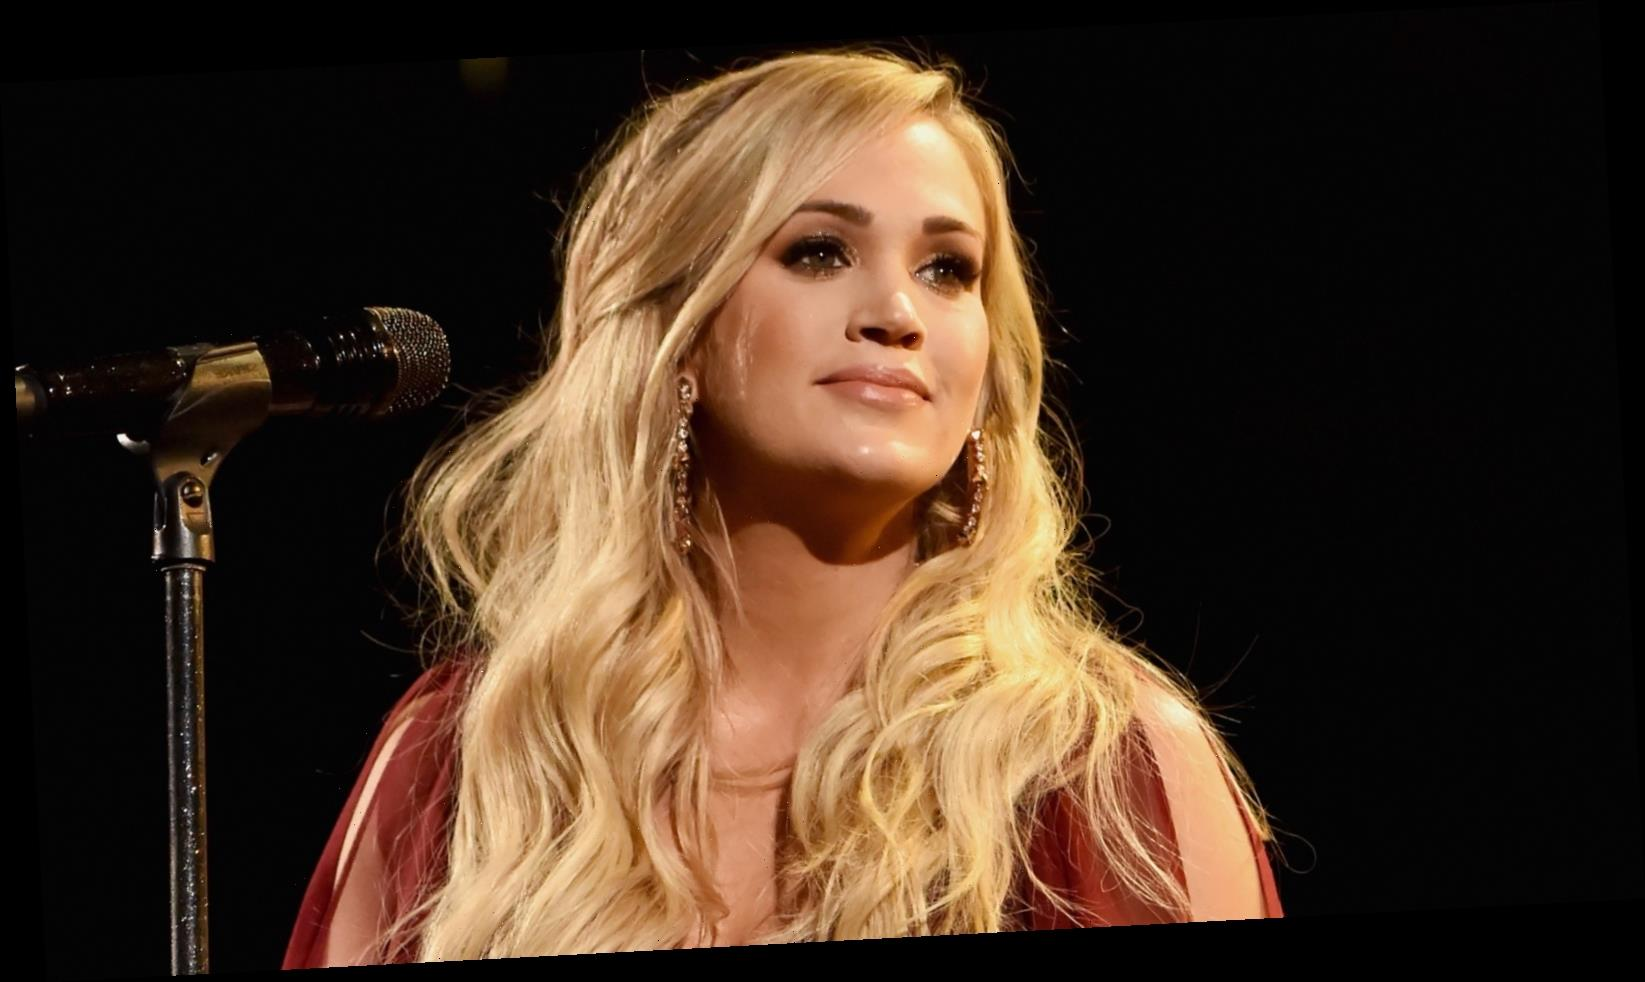 Sad details about Carrie Underwood's life